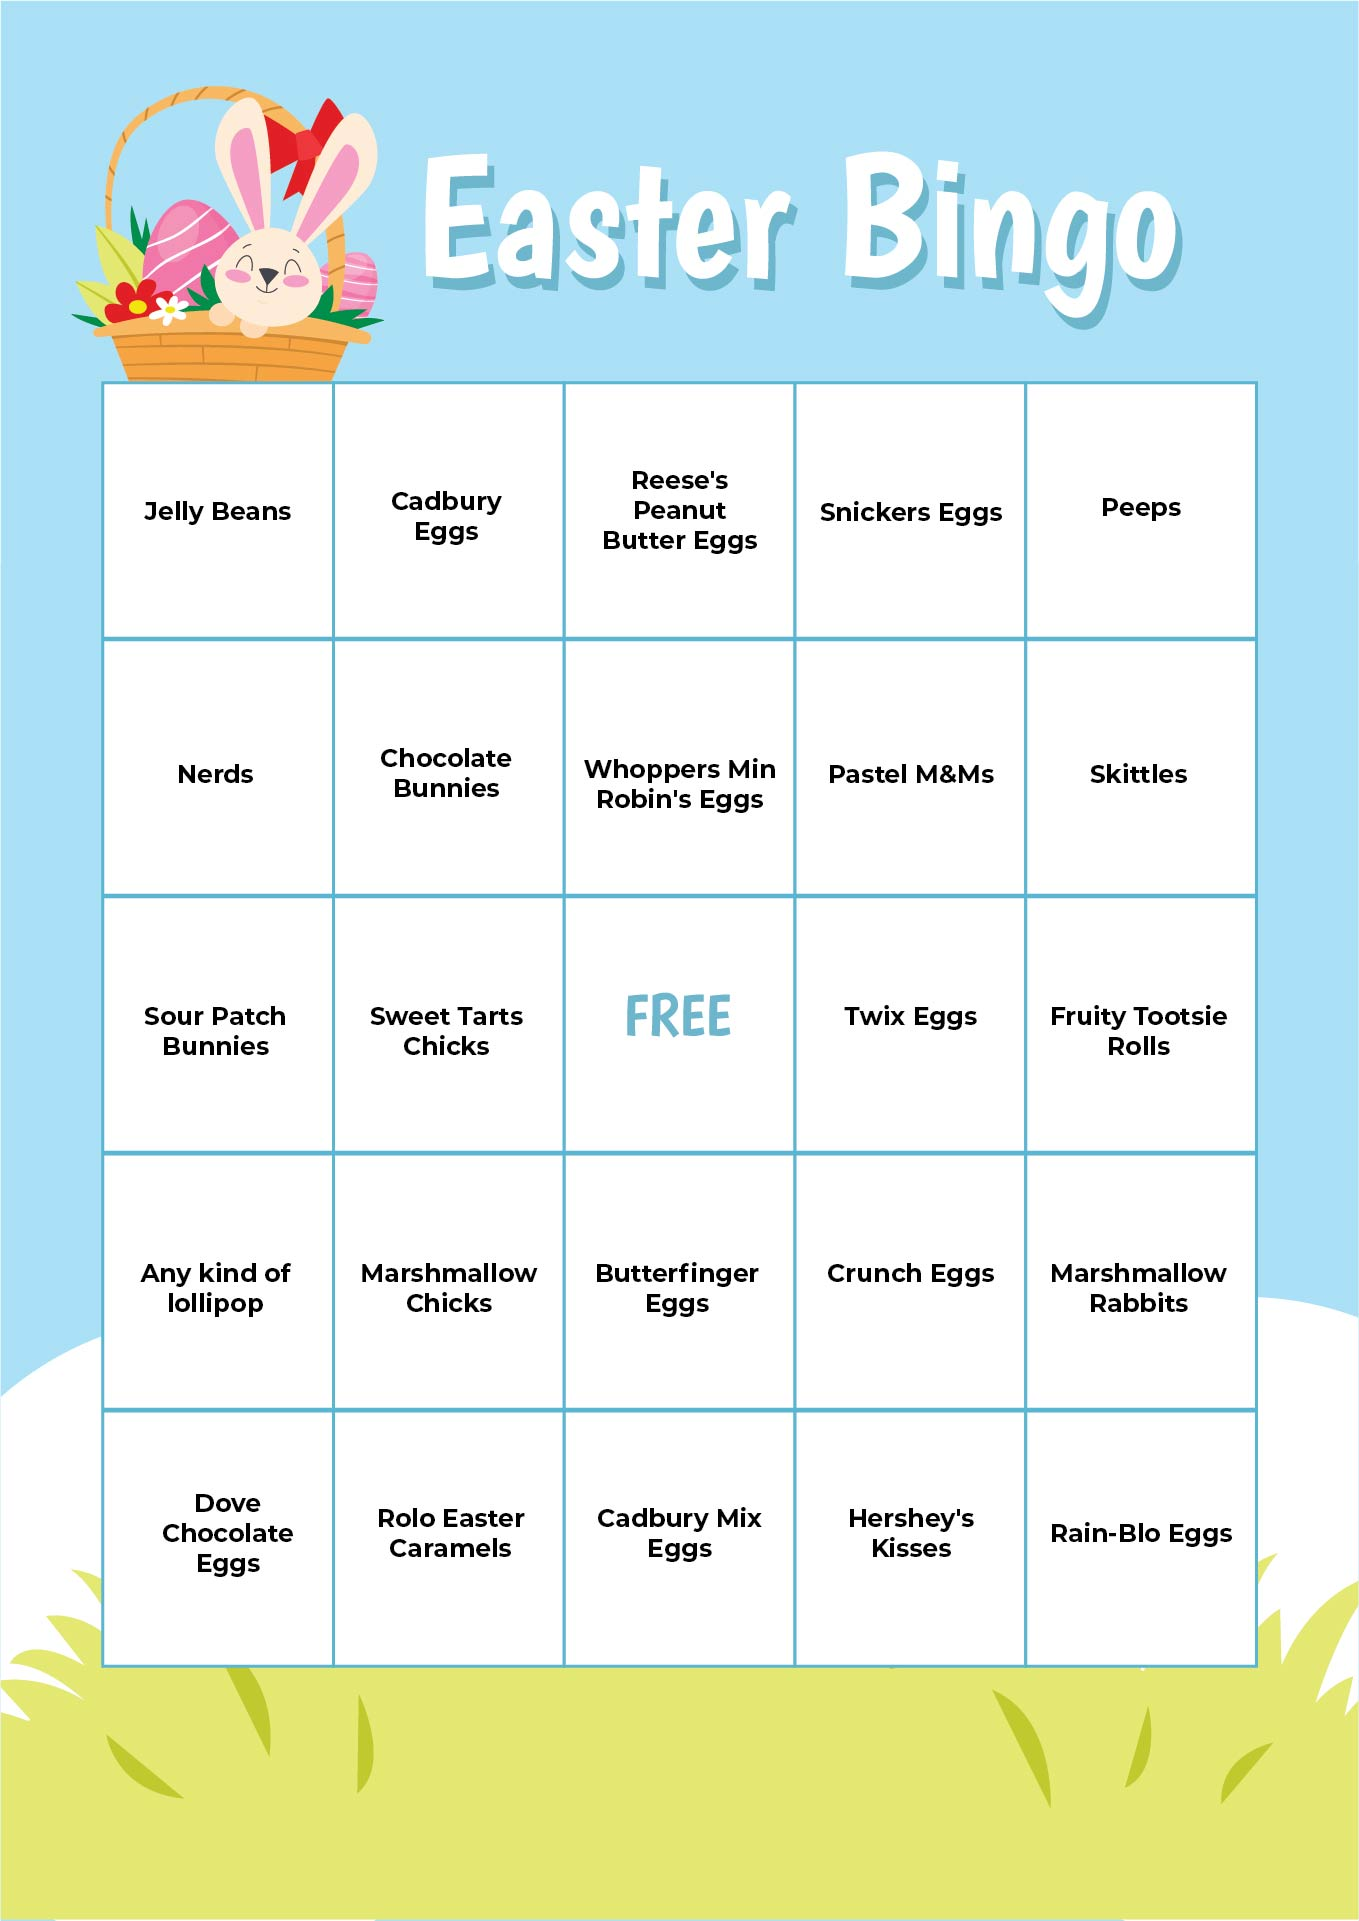 7 Images of Printable Easter Bingo Games